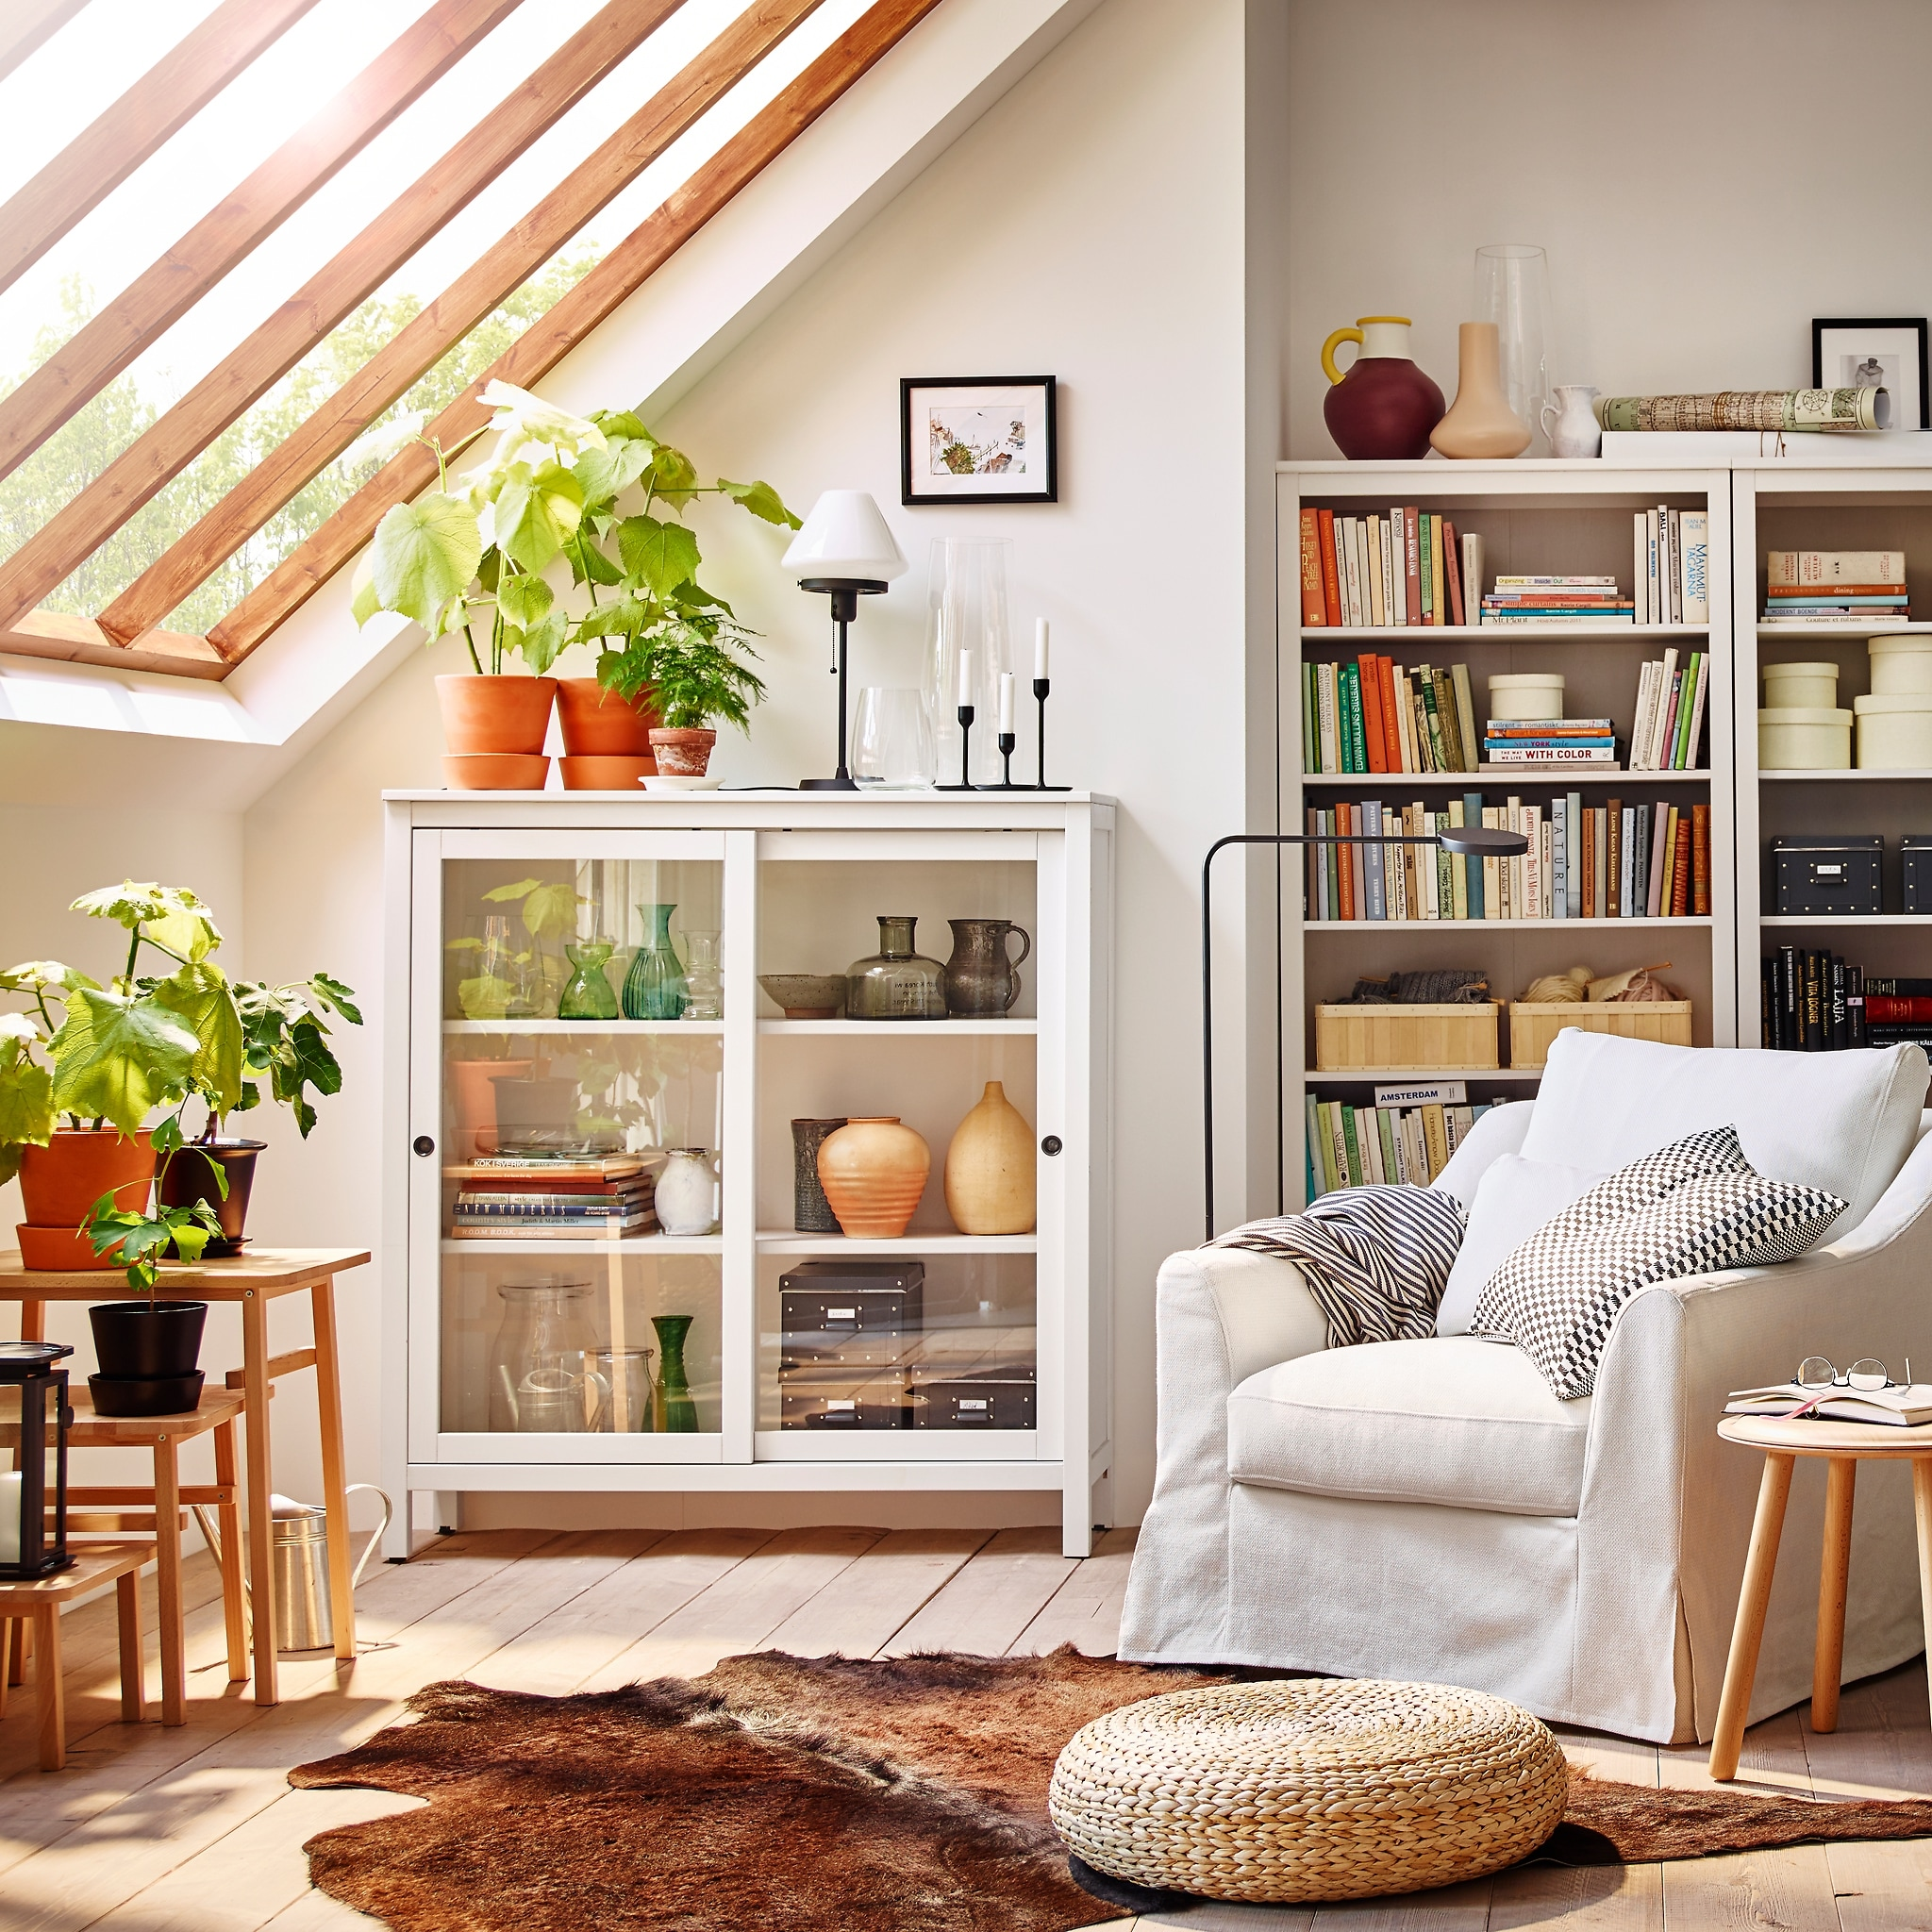 3 Exciting Tips To Make Room Look More Spacious